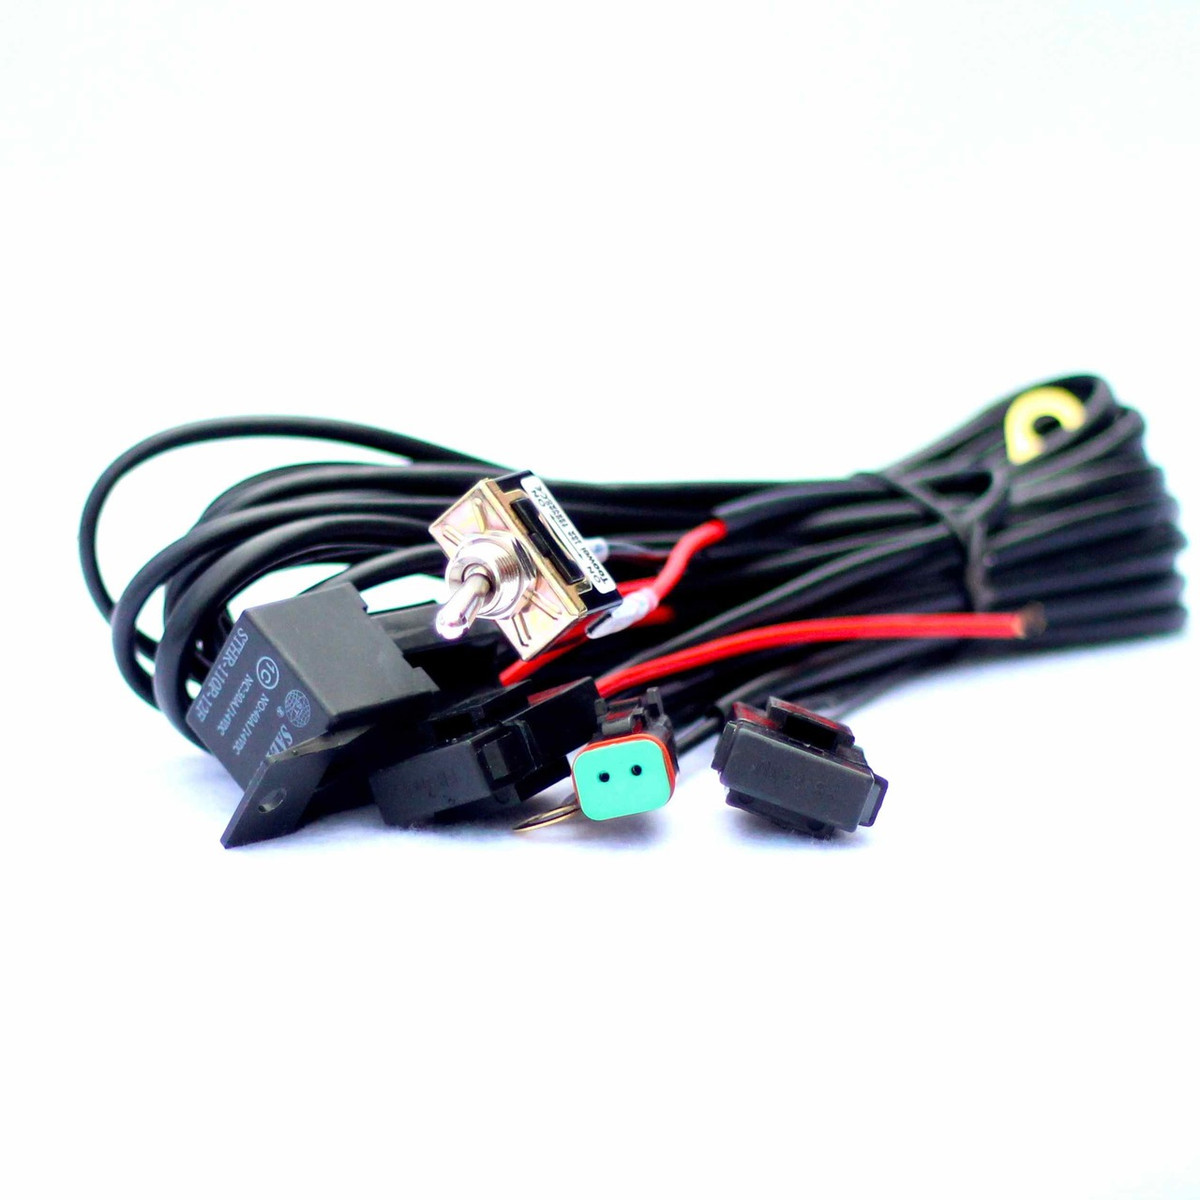 WH20_1__30625.1396140977?c=2 duck boat wiring harness for southern lite led boat lite boat wiring harness at mifinder.co